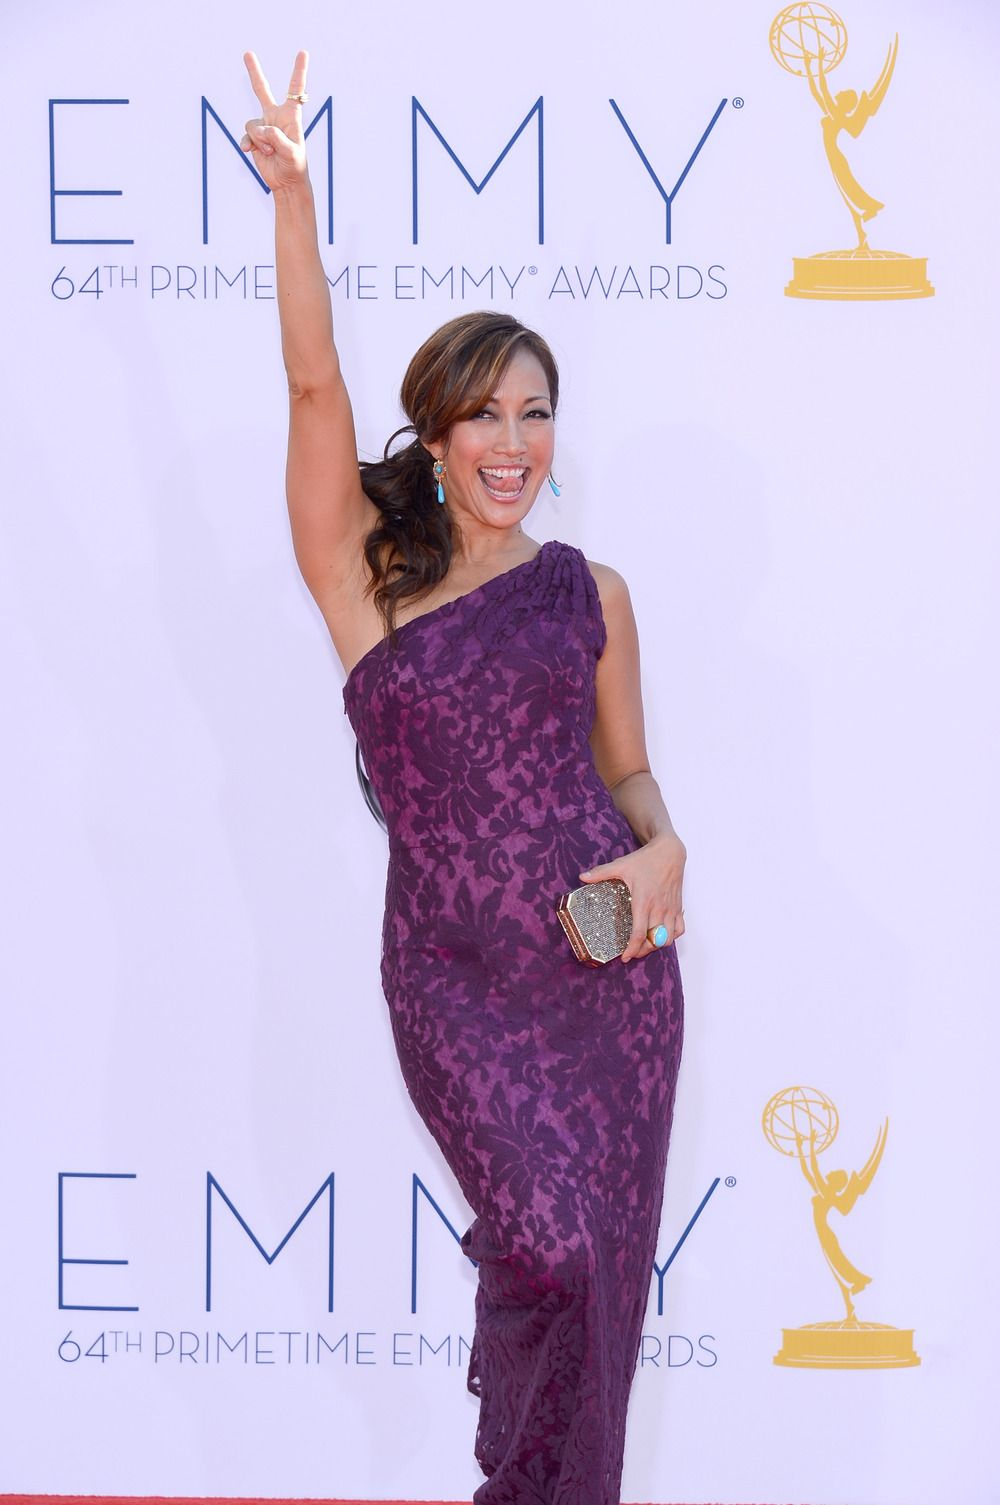 Dancing With the Stars Judge Carrie Ann Inaba wore a purple dress by ...